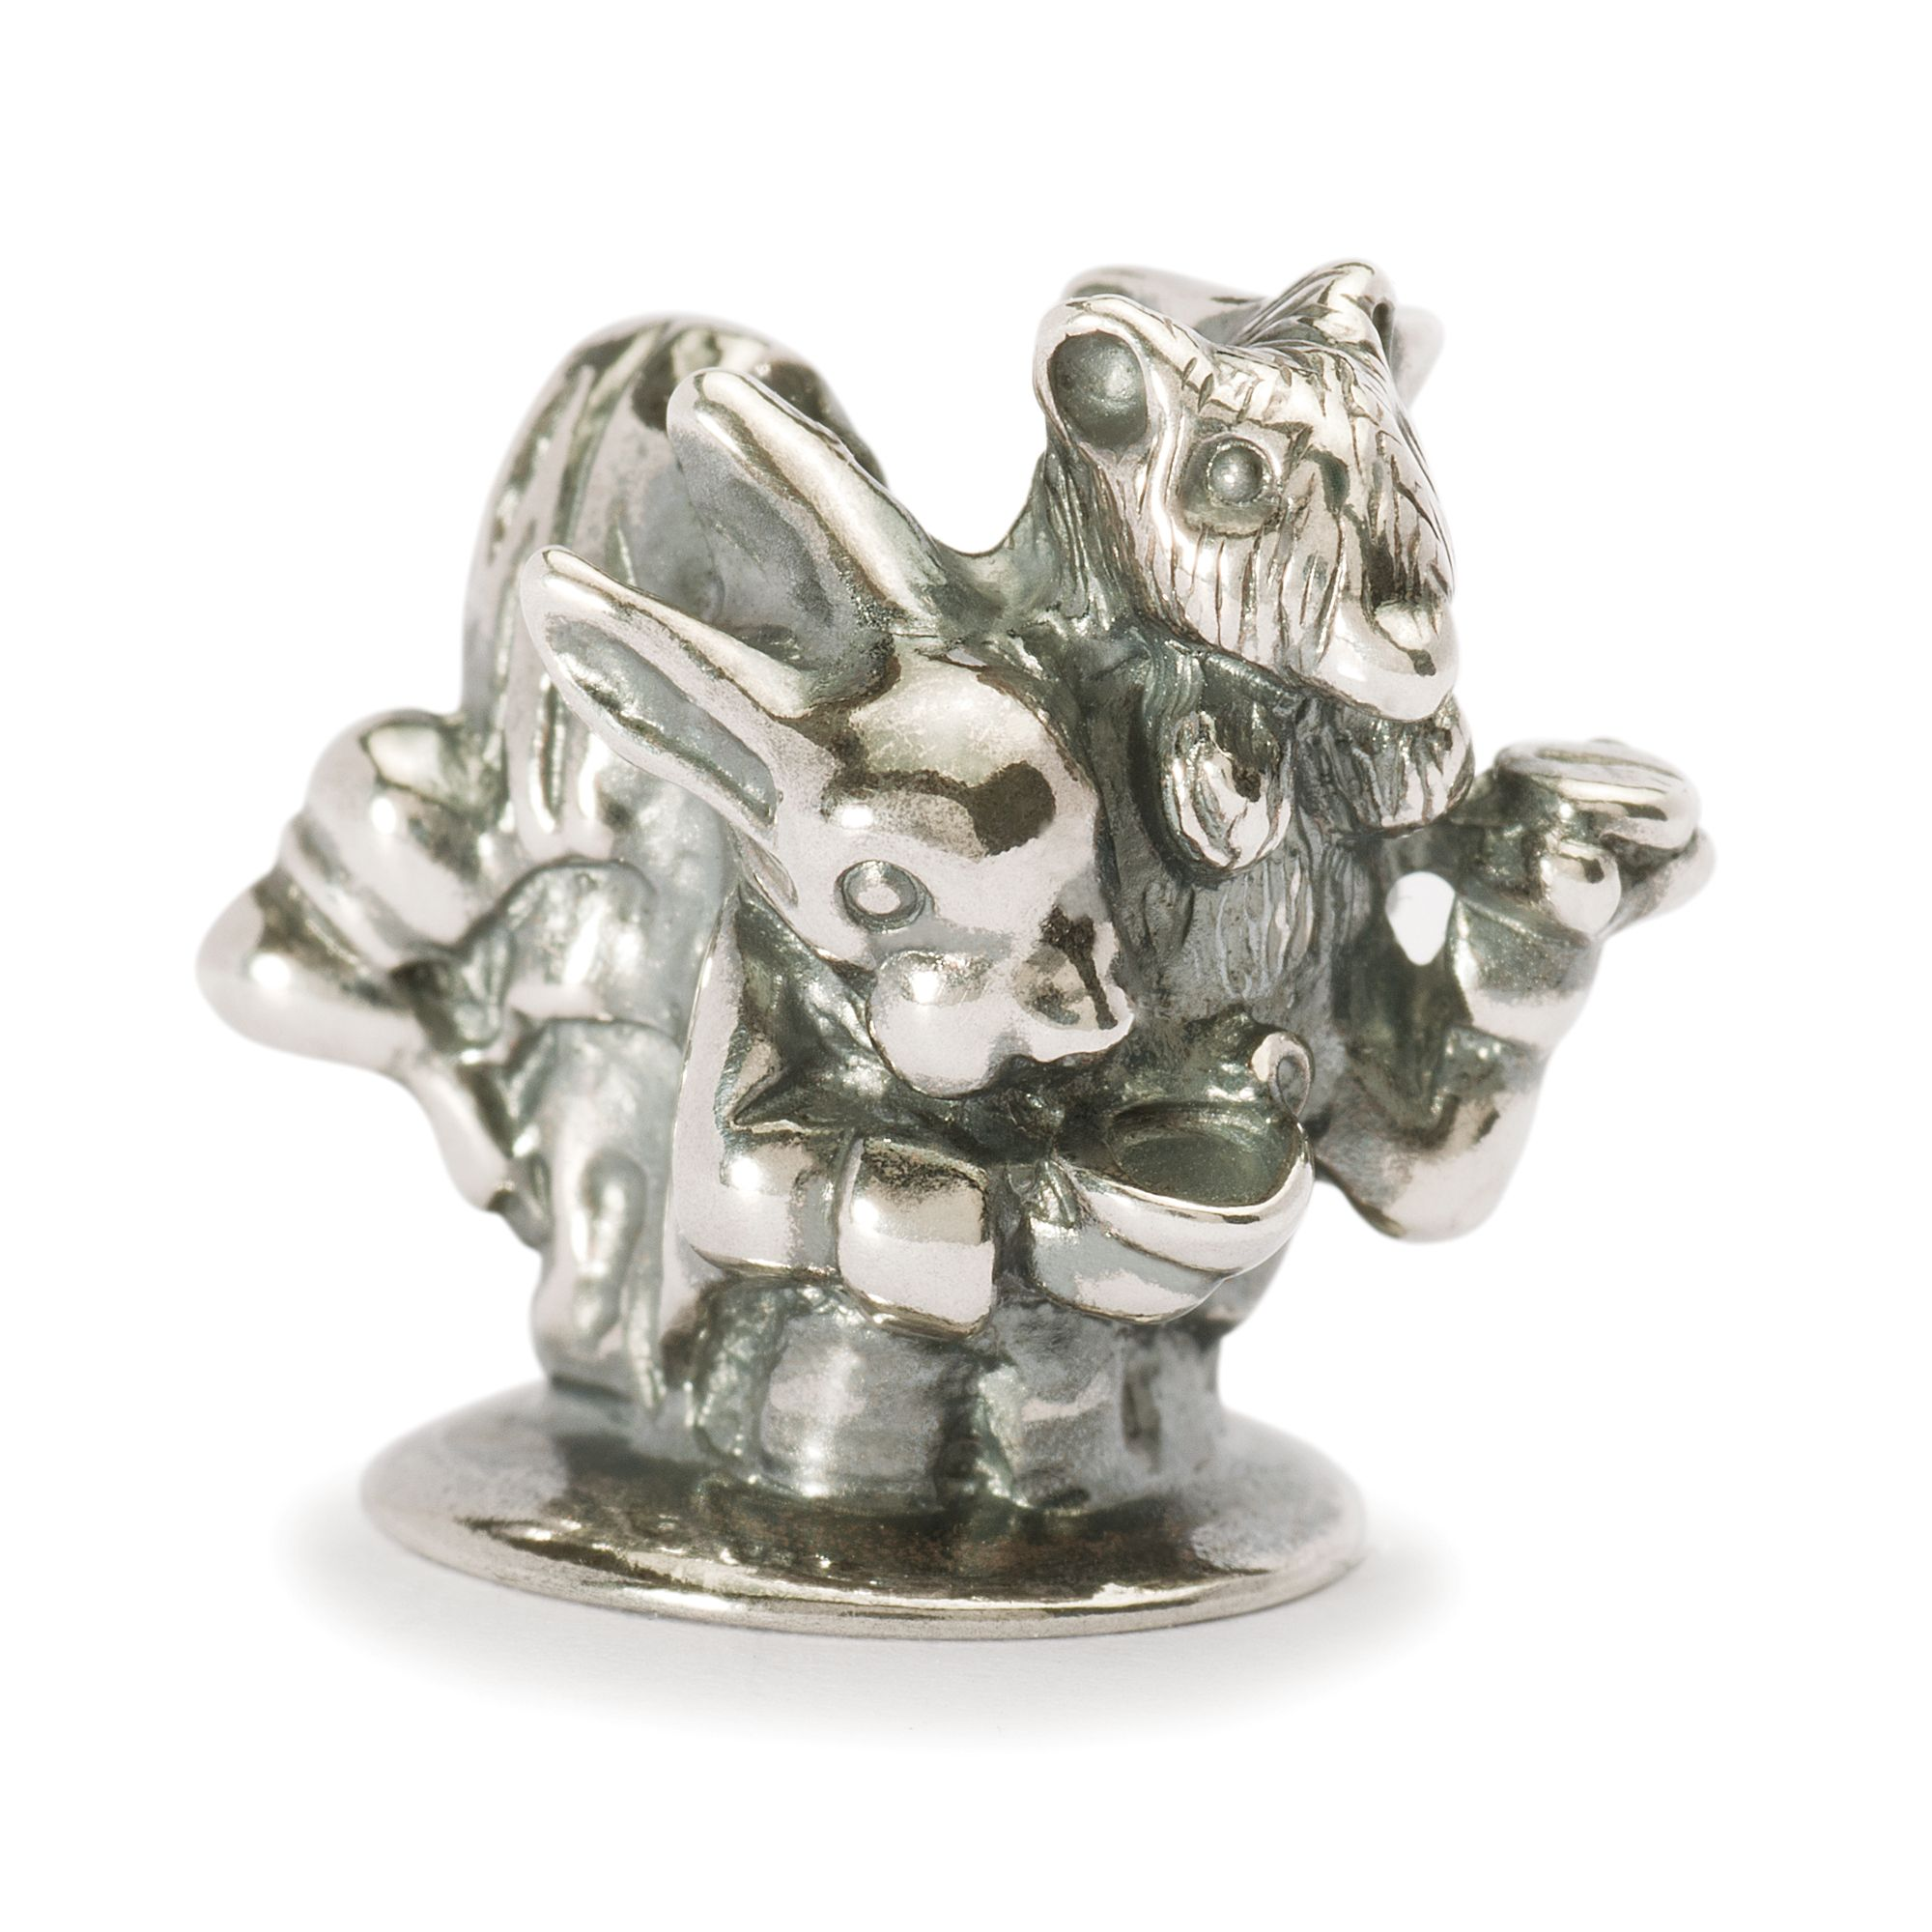 English Tea Party silver charm bead